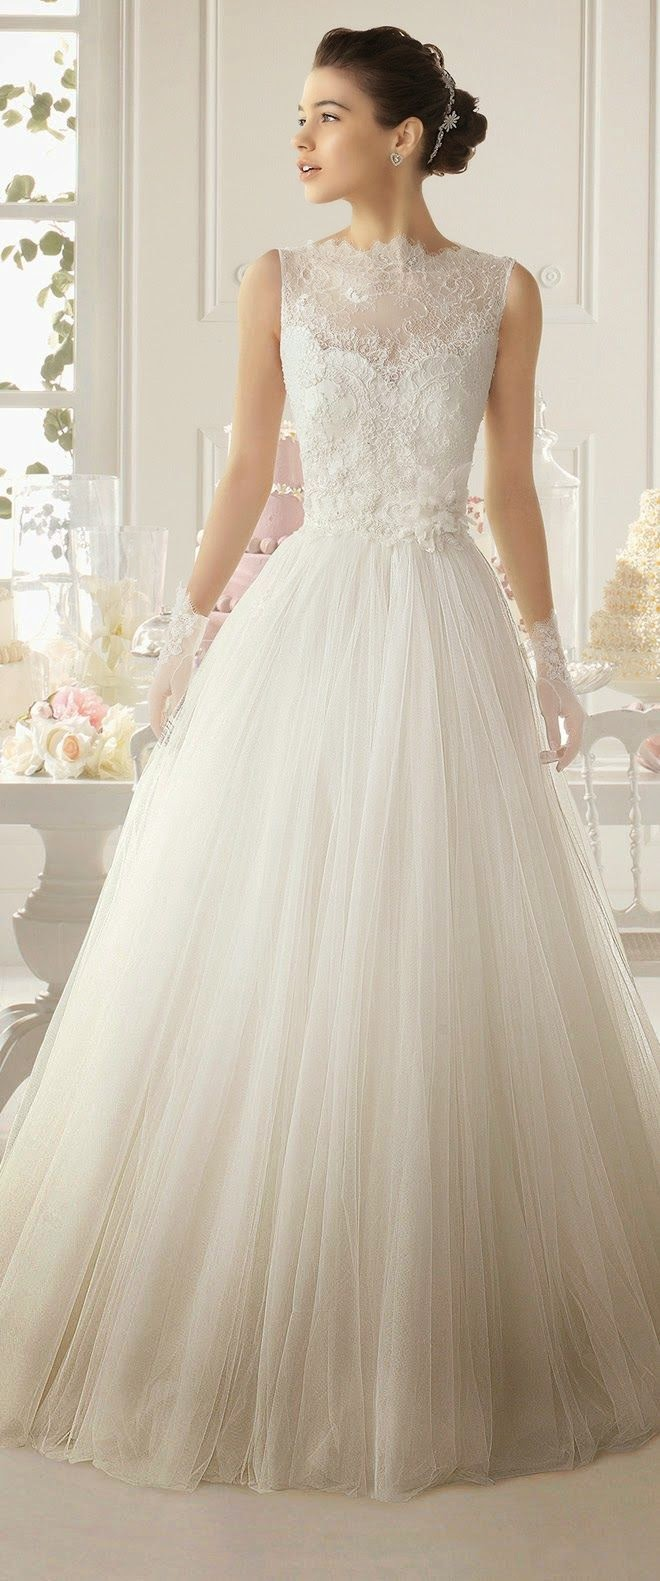 Top 5 Outstanding Weeding Dresses